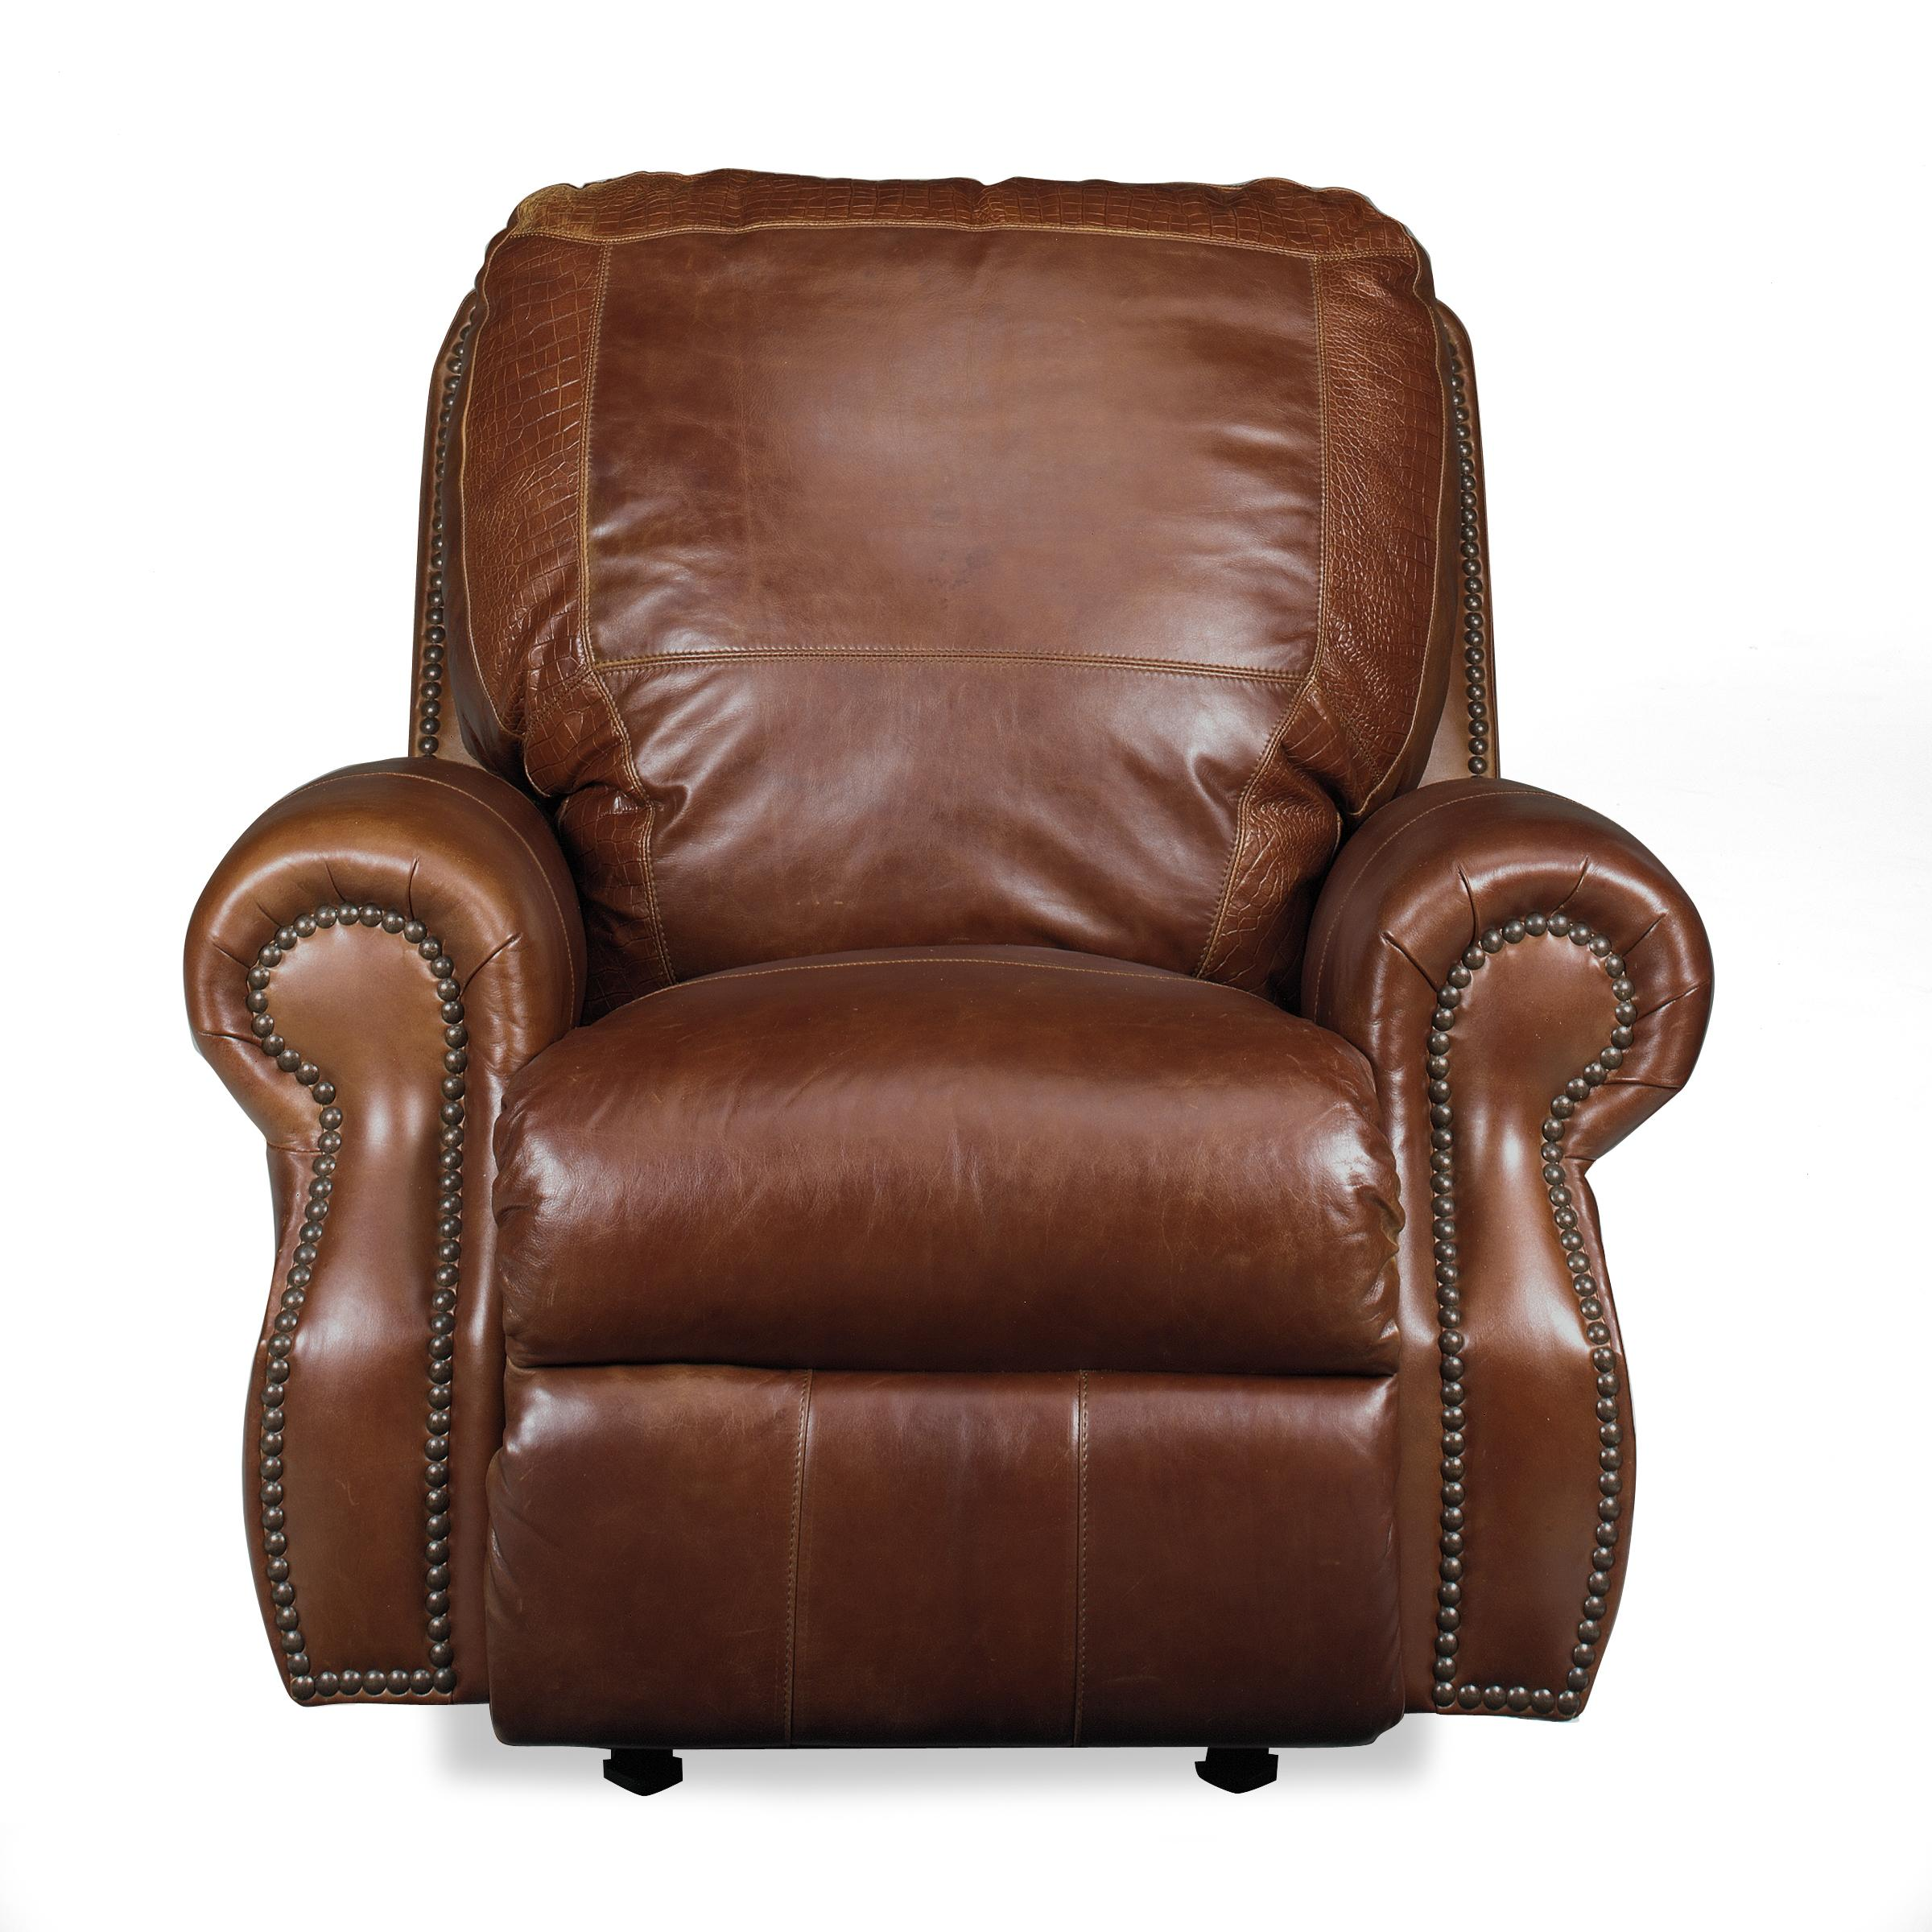 Rolled Arm Rocker Recliner